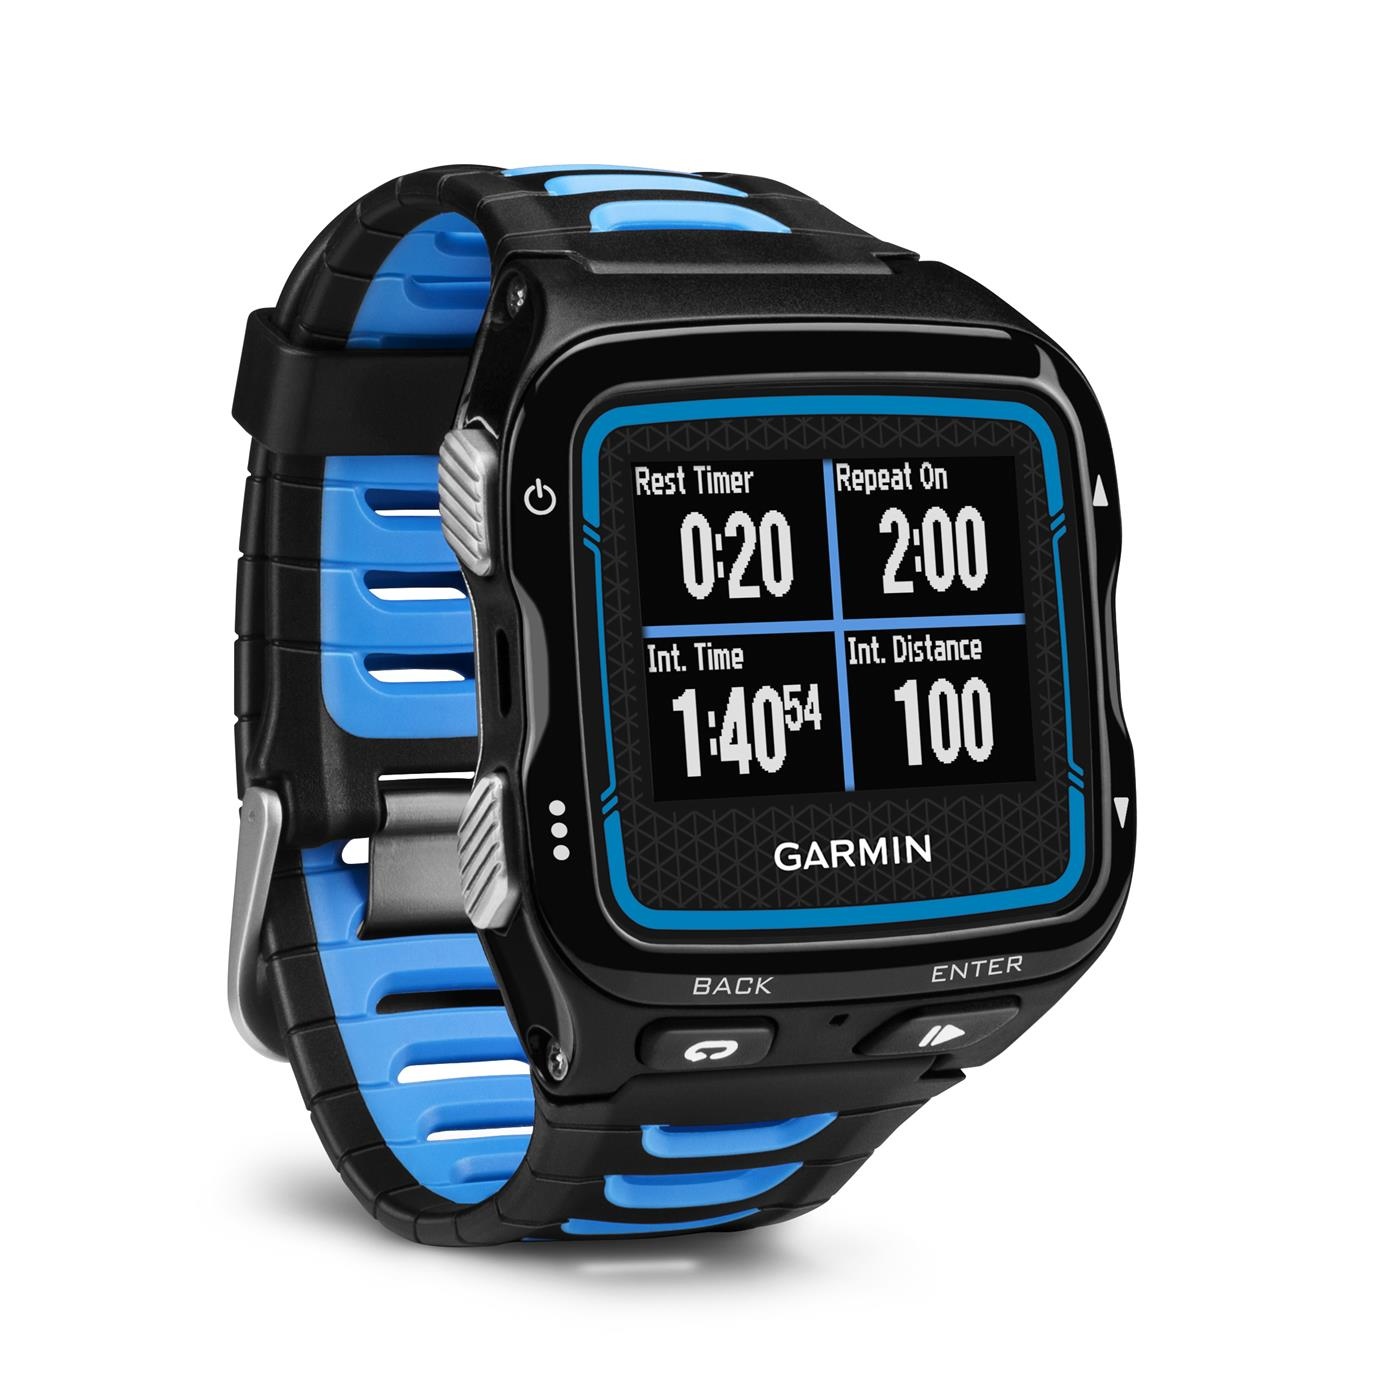 010-01174-30   Garmin Forerunner 920XT Sort m/HMR-Run Med Pulsbelte HMR-RUN